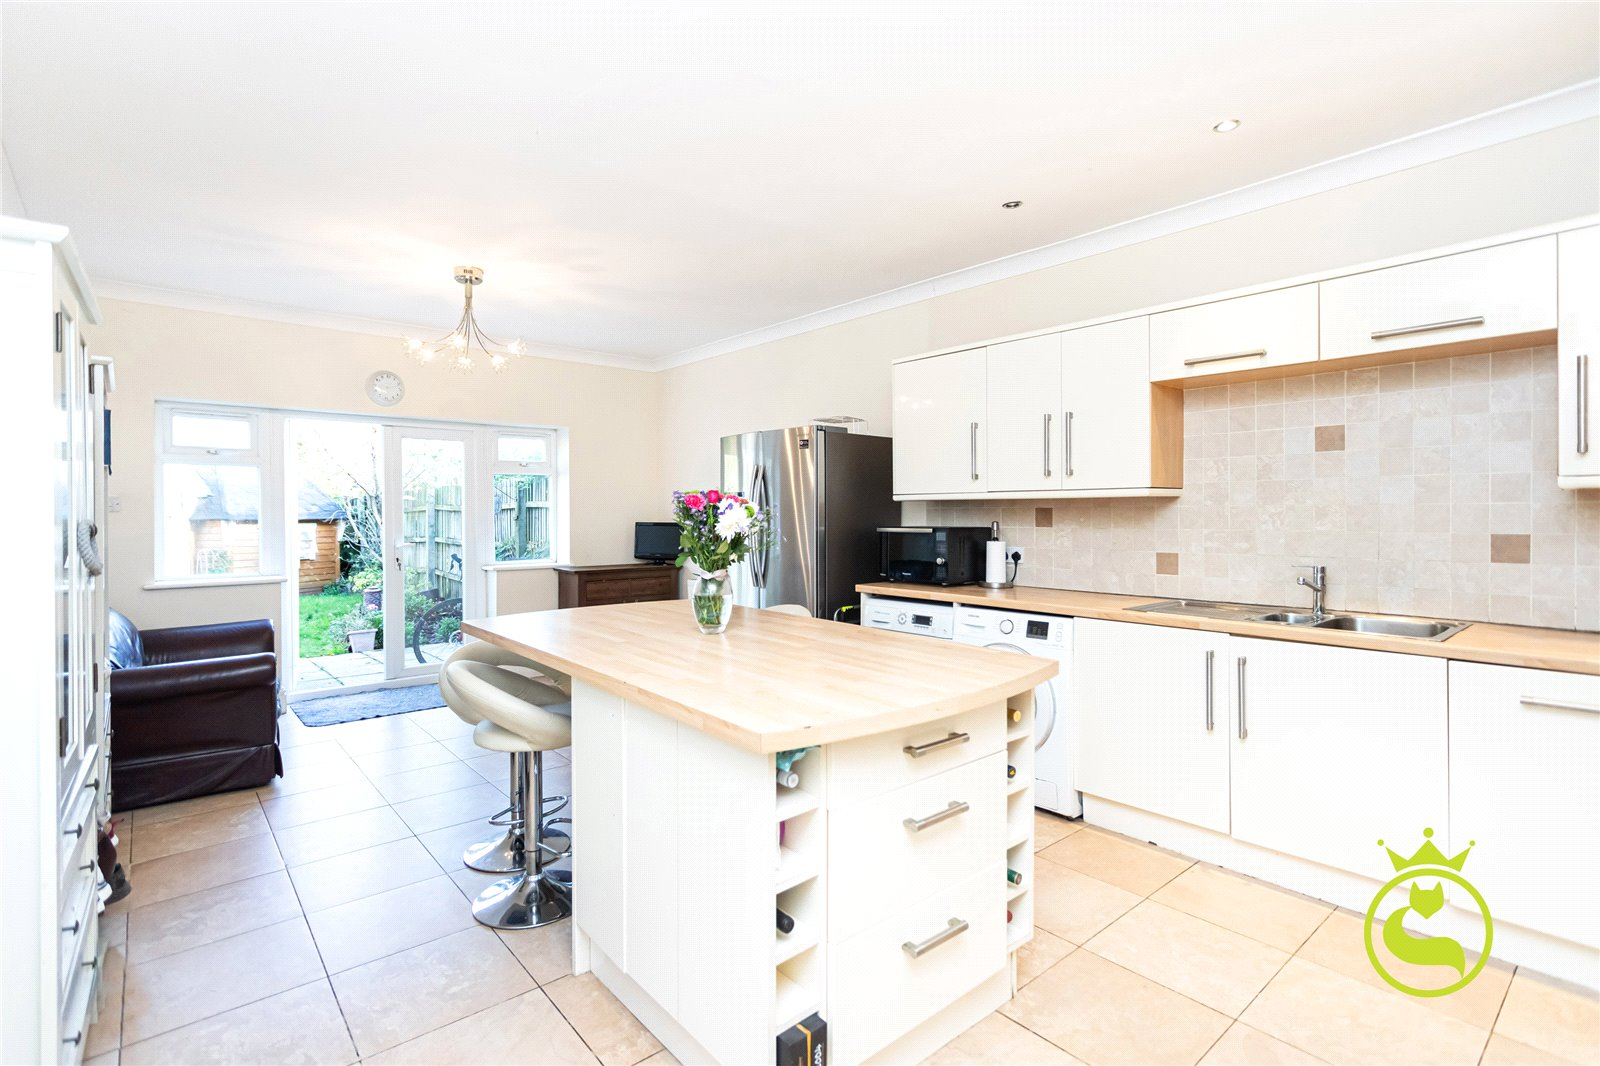 3 bed house for sale in Sandbanks Road, Whitecliff, BH14